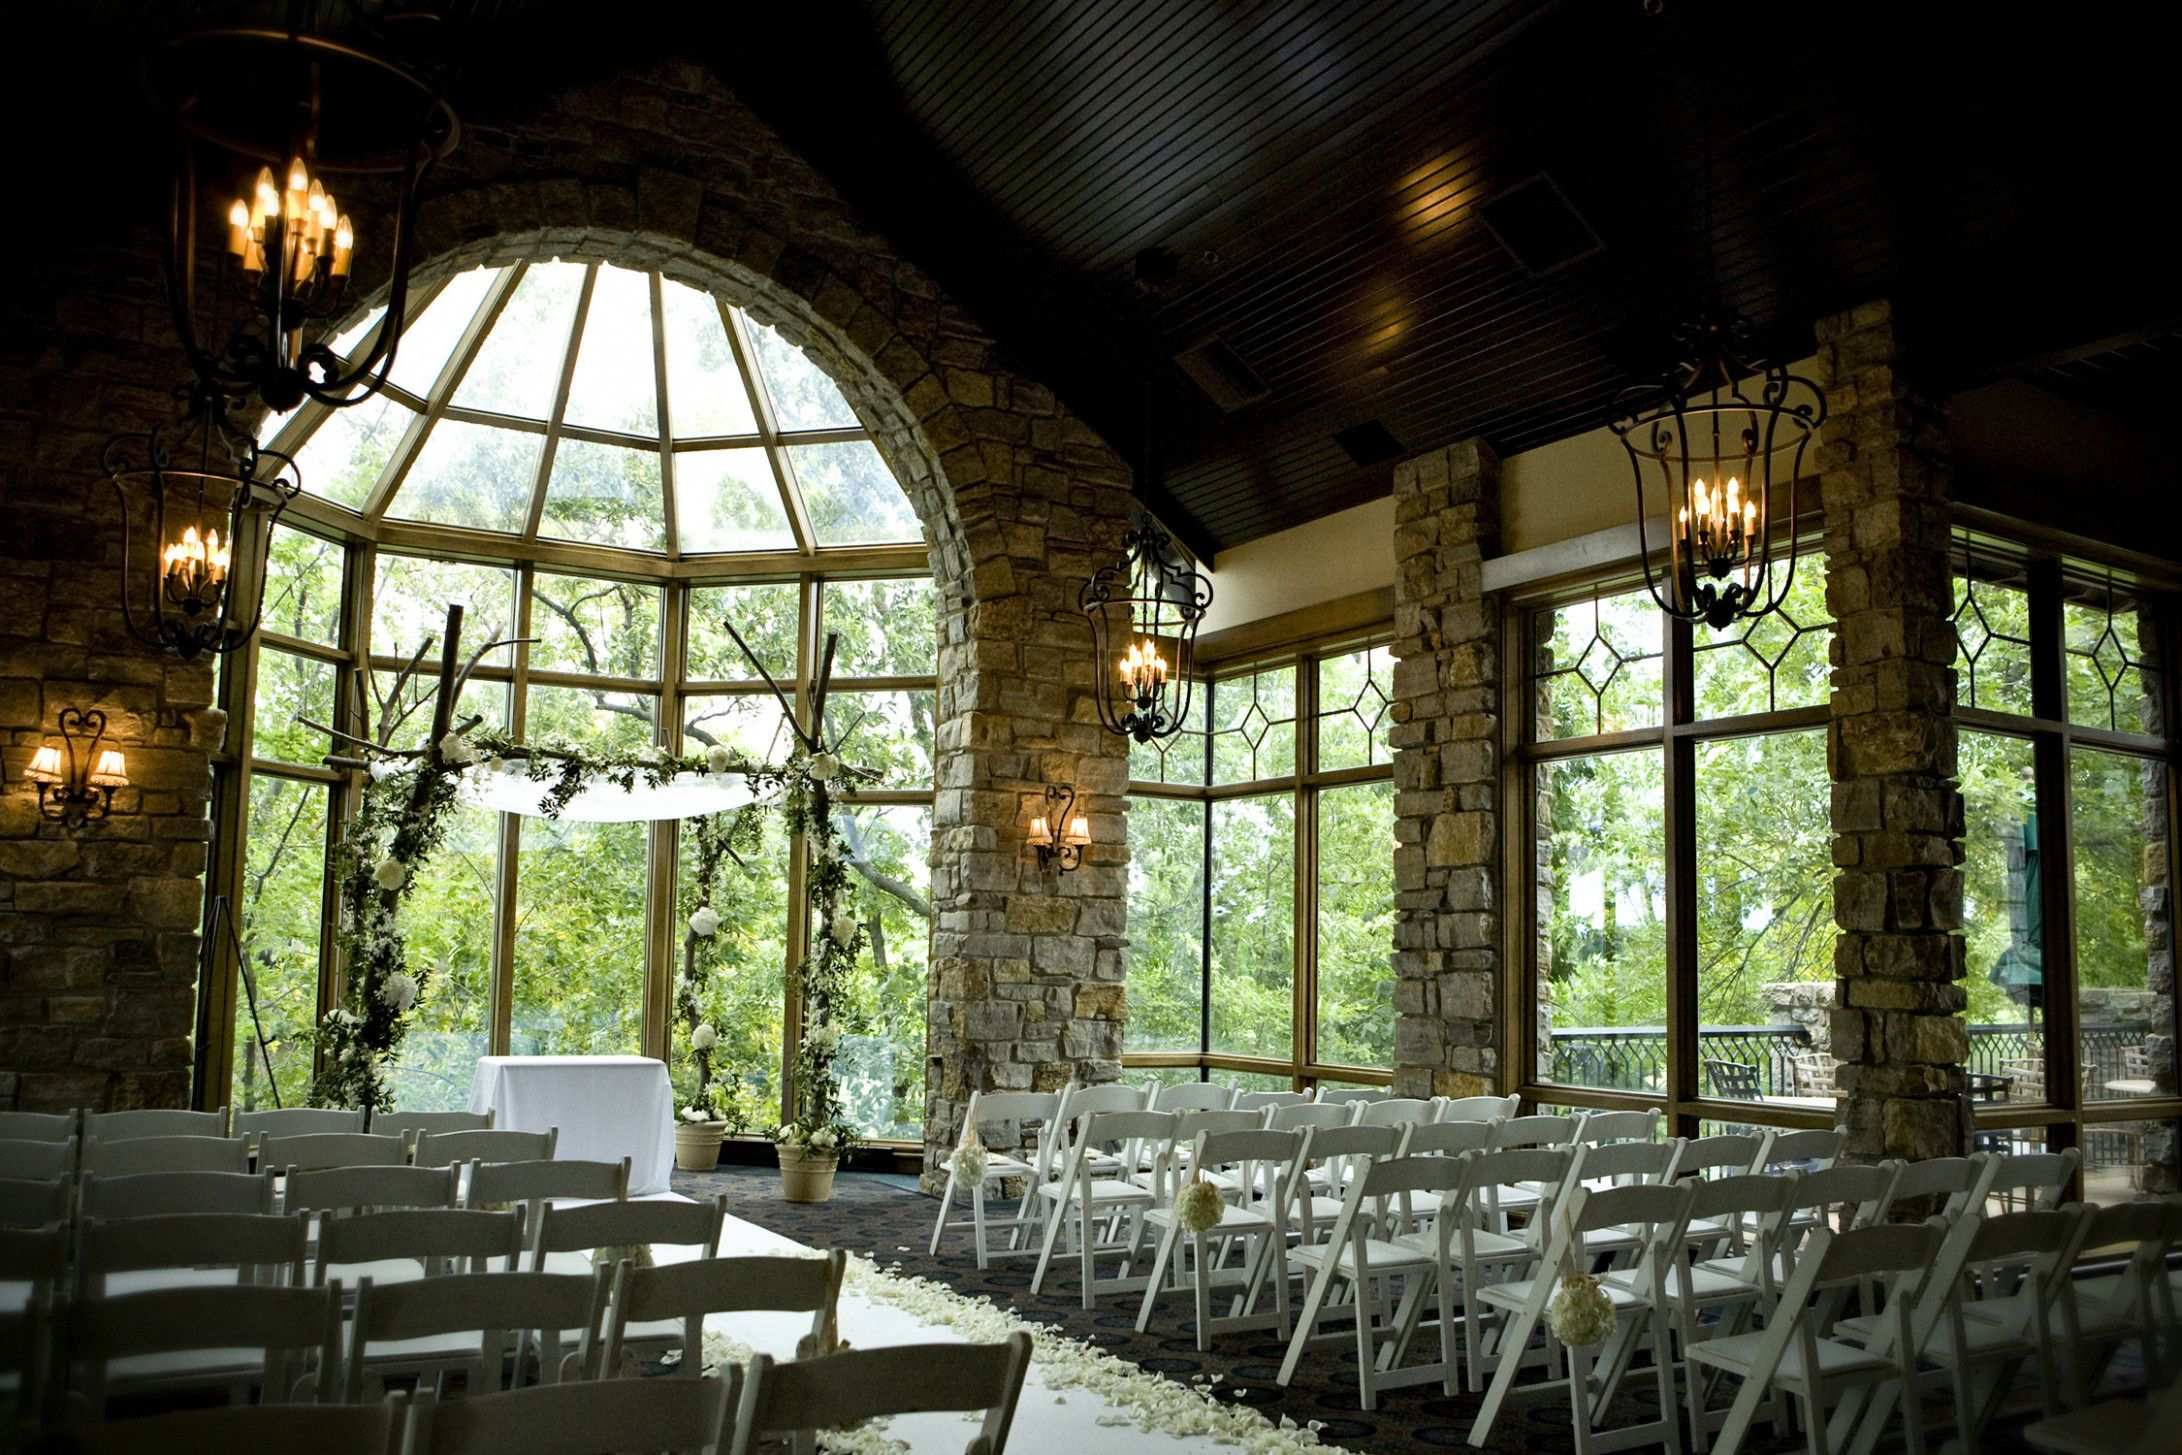 Wedding Venues Missouri Kansas City Missouri Wedding Venues Kansas City Wedding Venues Kansas City Wedding